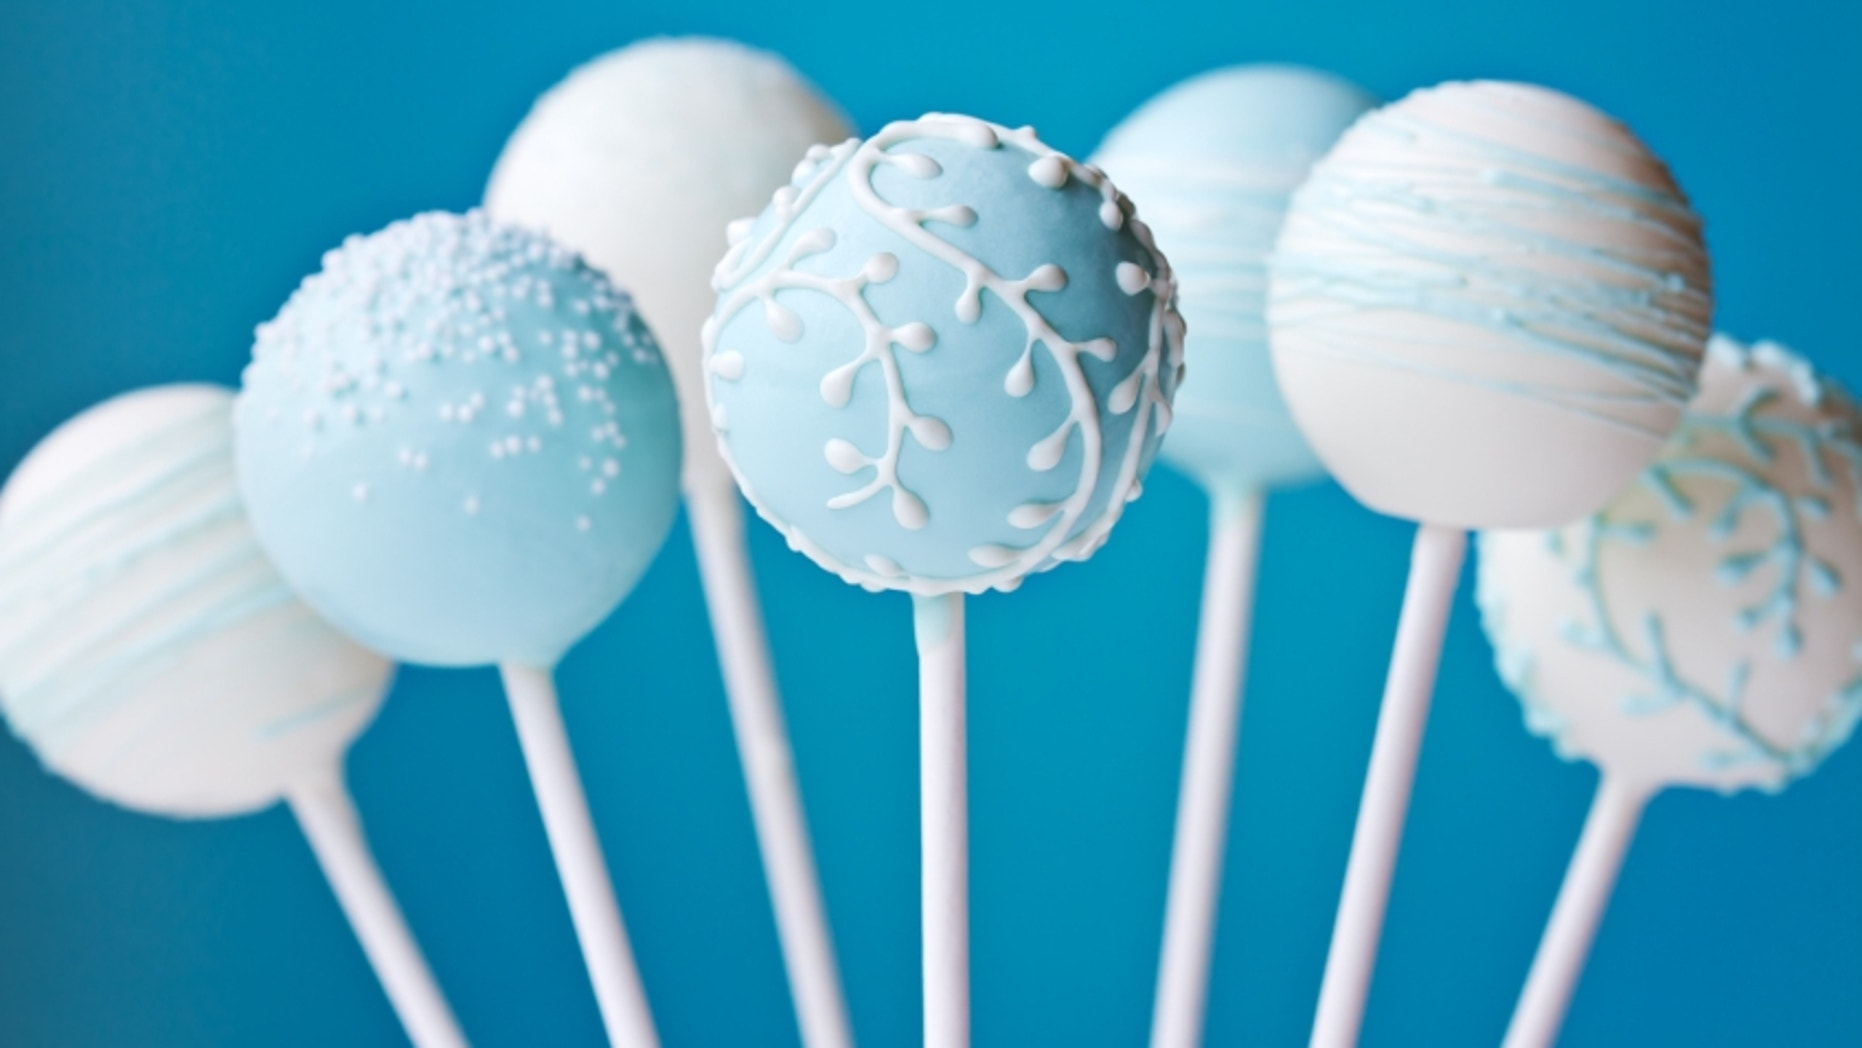 Cake pops decorated in blue and white